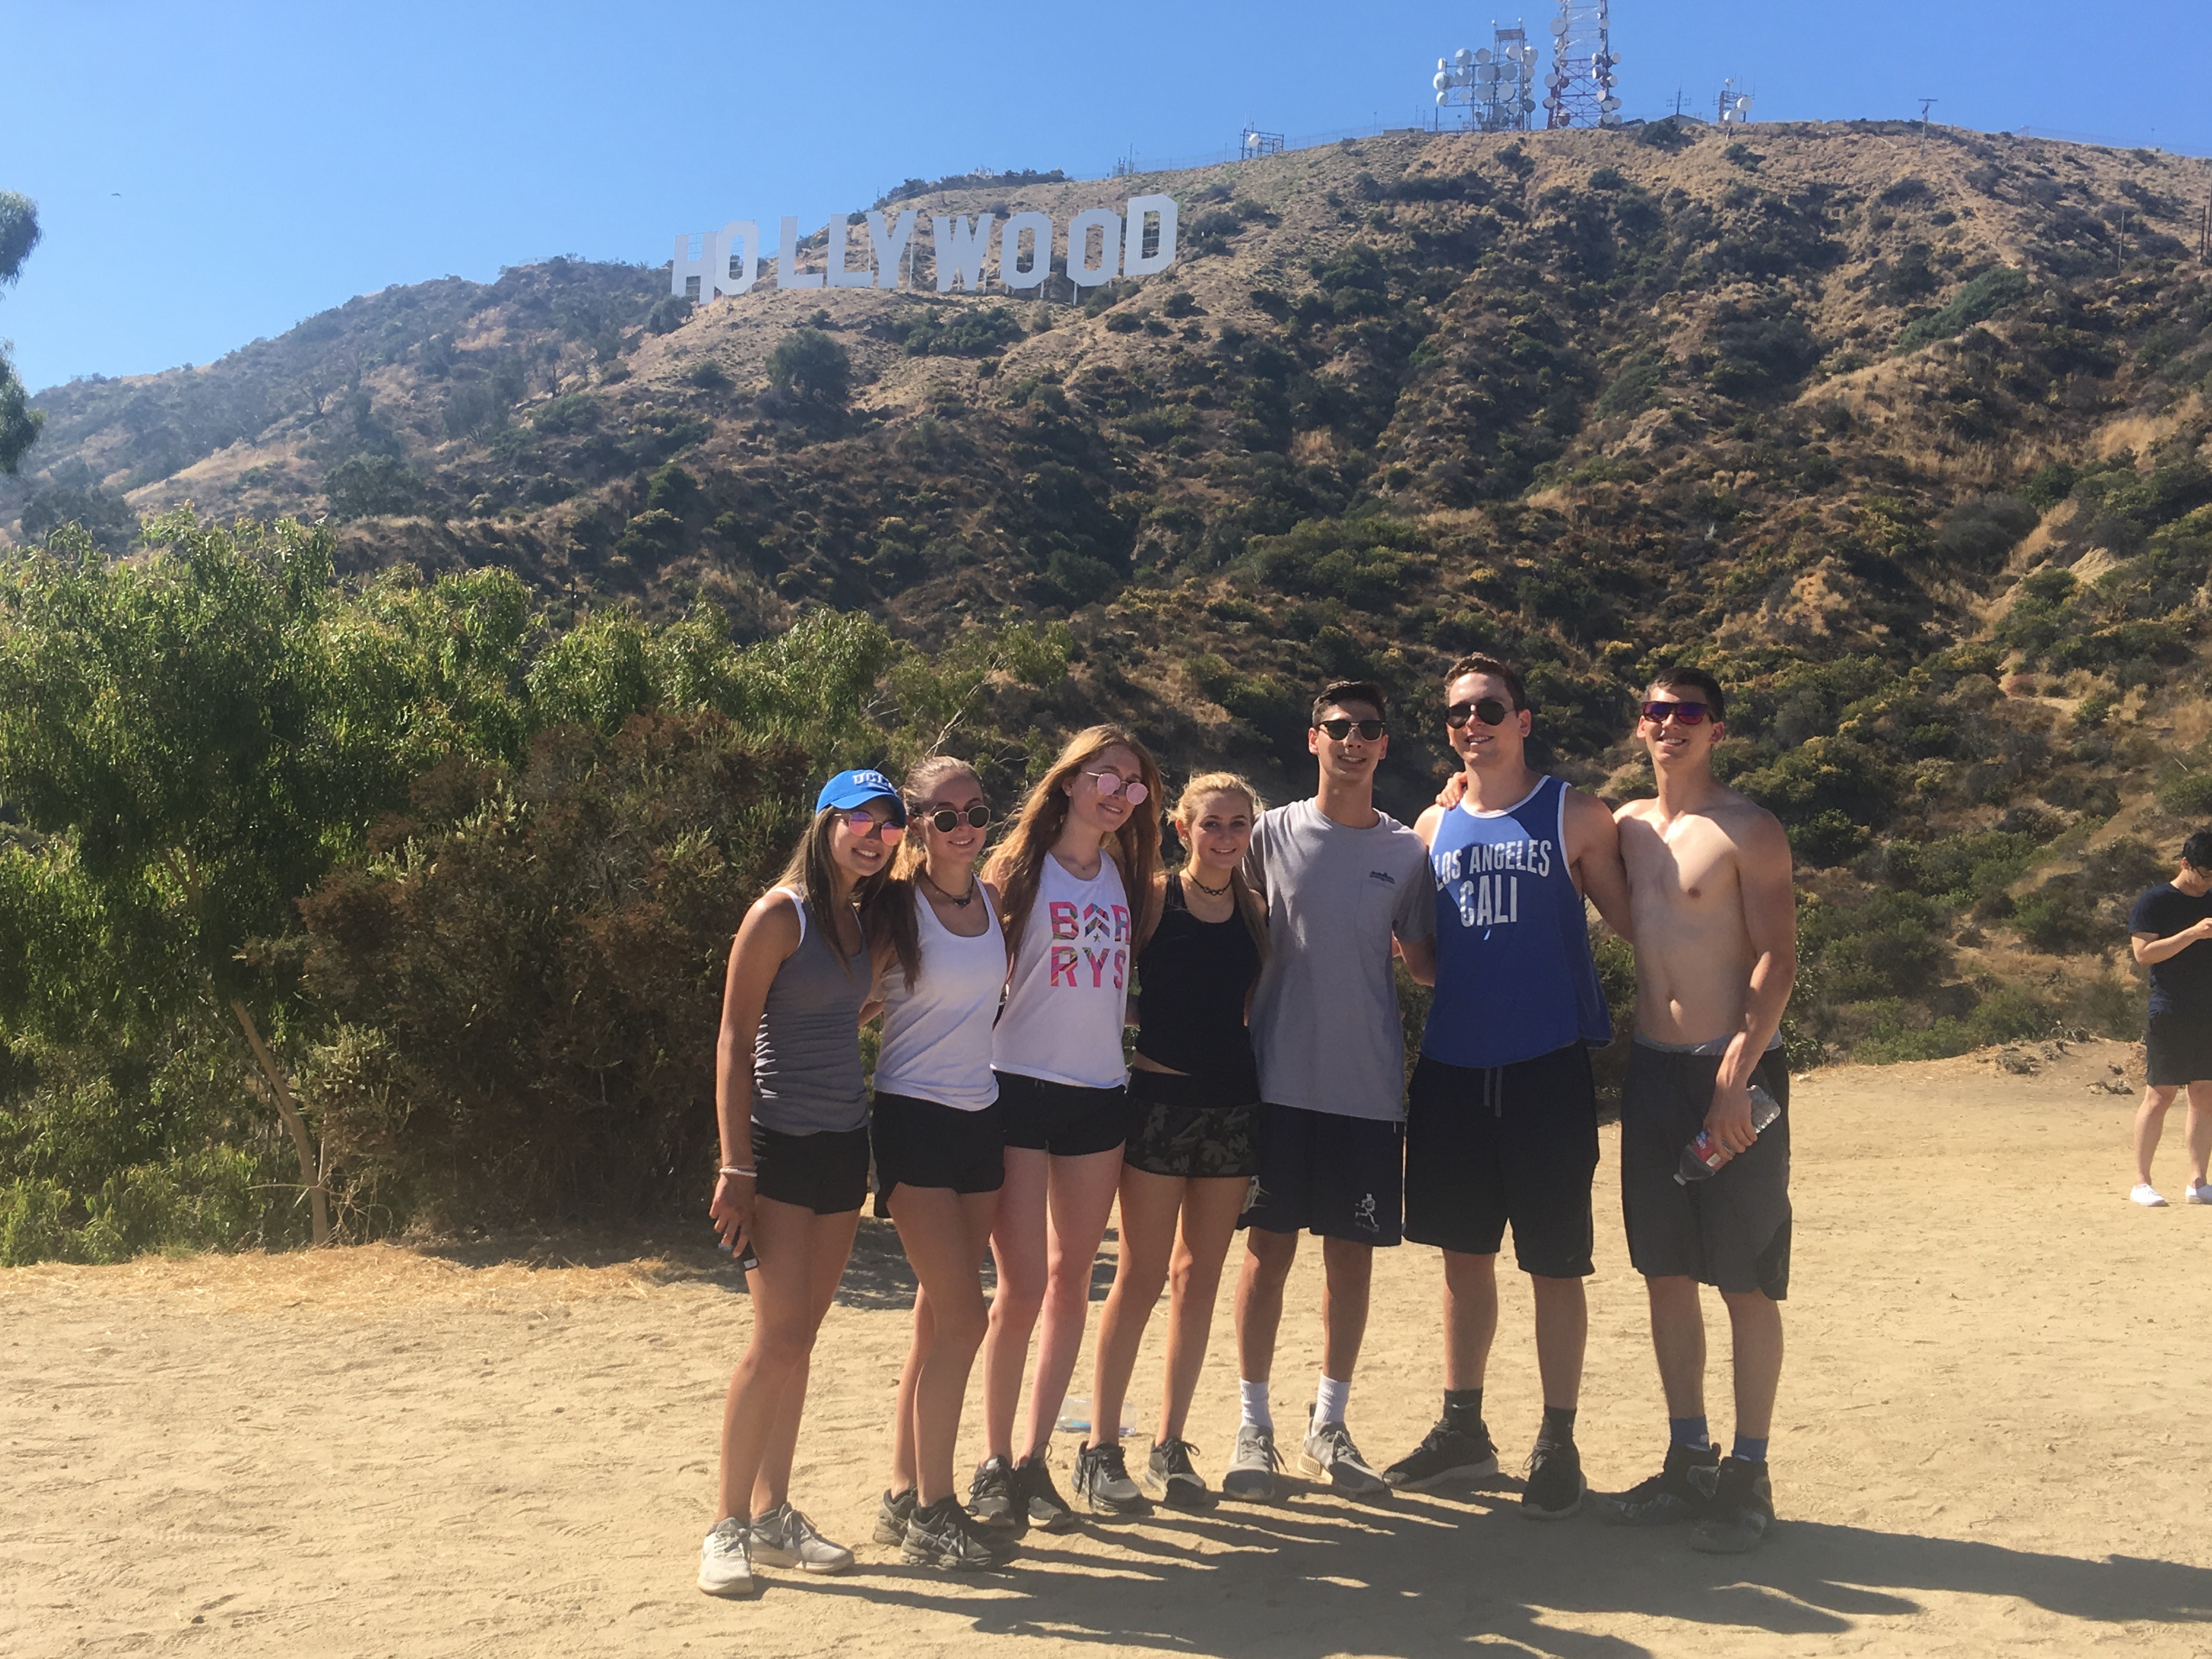 Hollywood sign during summer